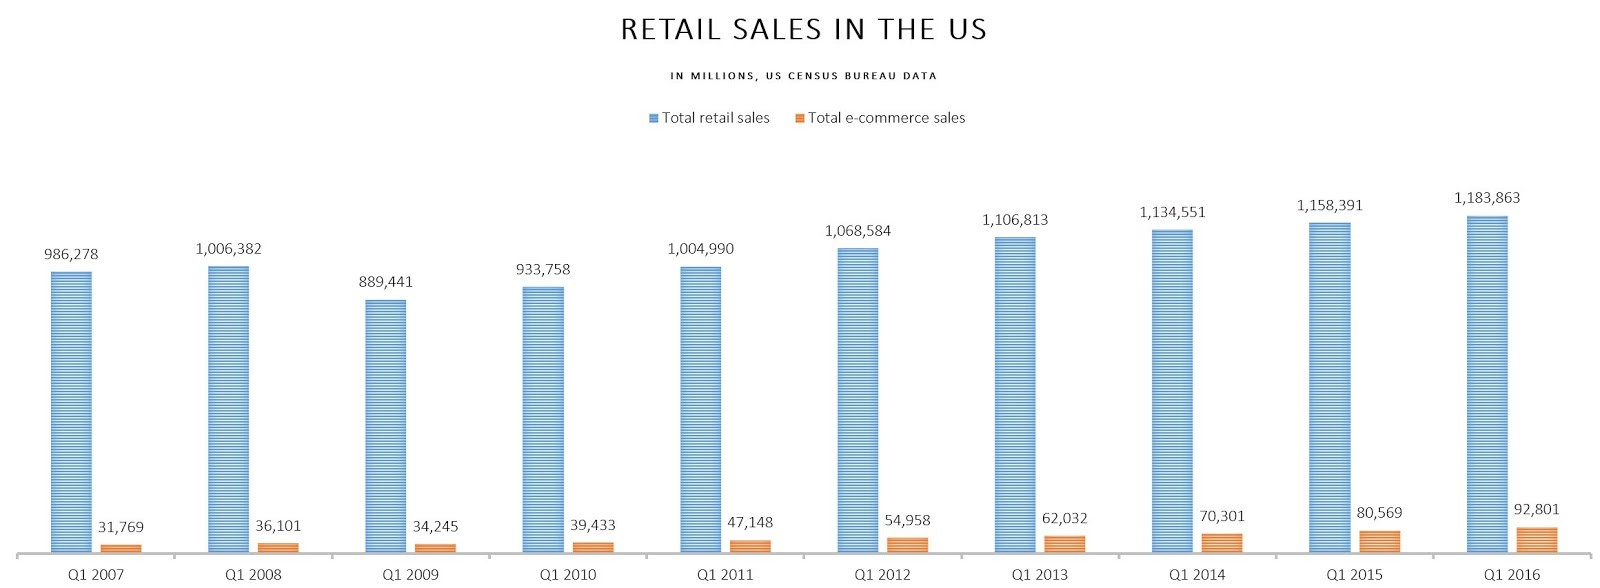 E-Commerce Sales in the US Made Up Just 8% of Total Retail Sales in Q1 2016